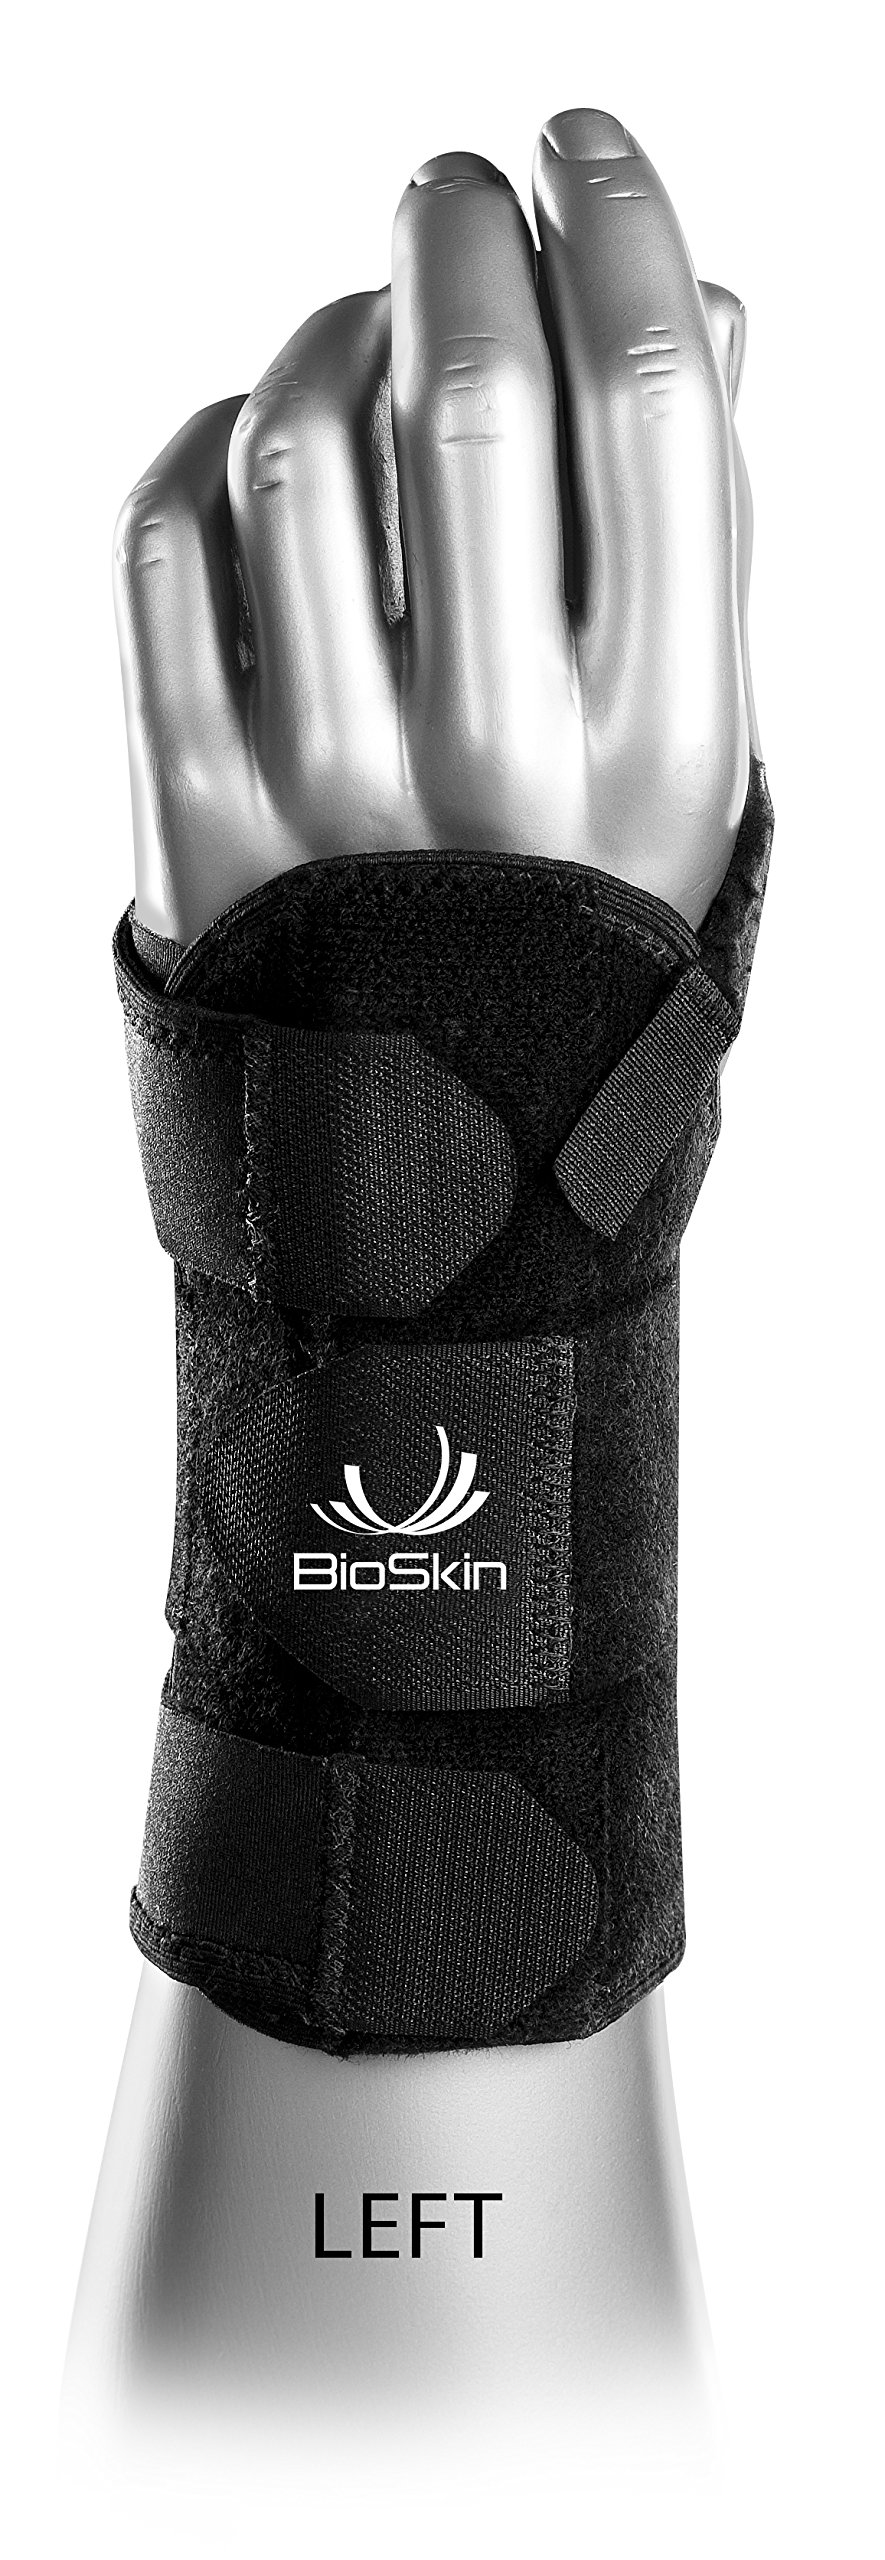 BioSkin DP2 Wrist Brace, Left, X-Large/Large by BIOSKIN